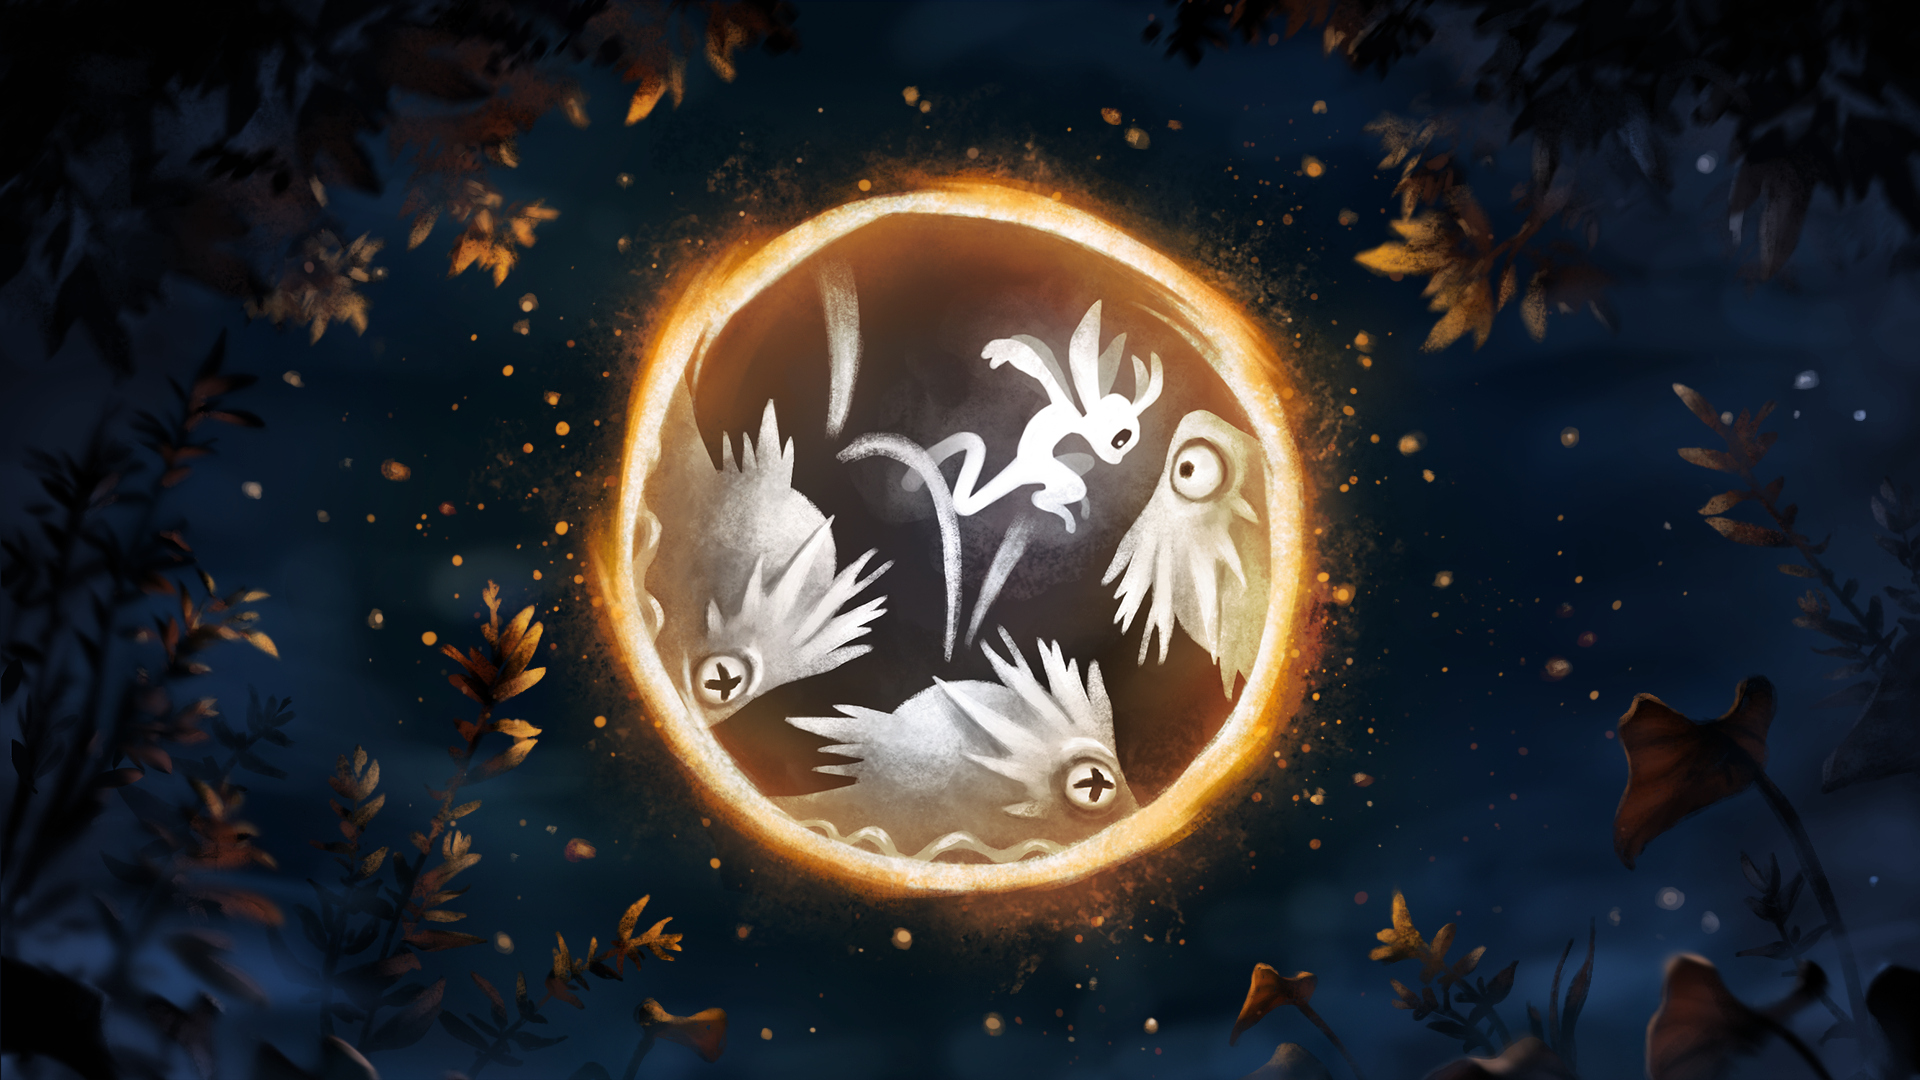 Flying Fury achievement for Ori and the Blind Forest on Nintendo Switch